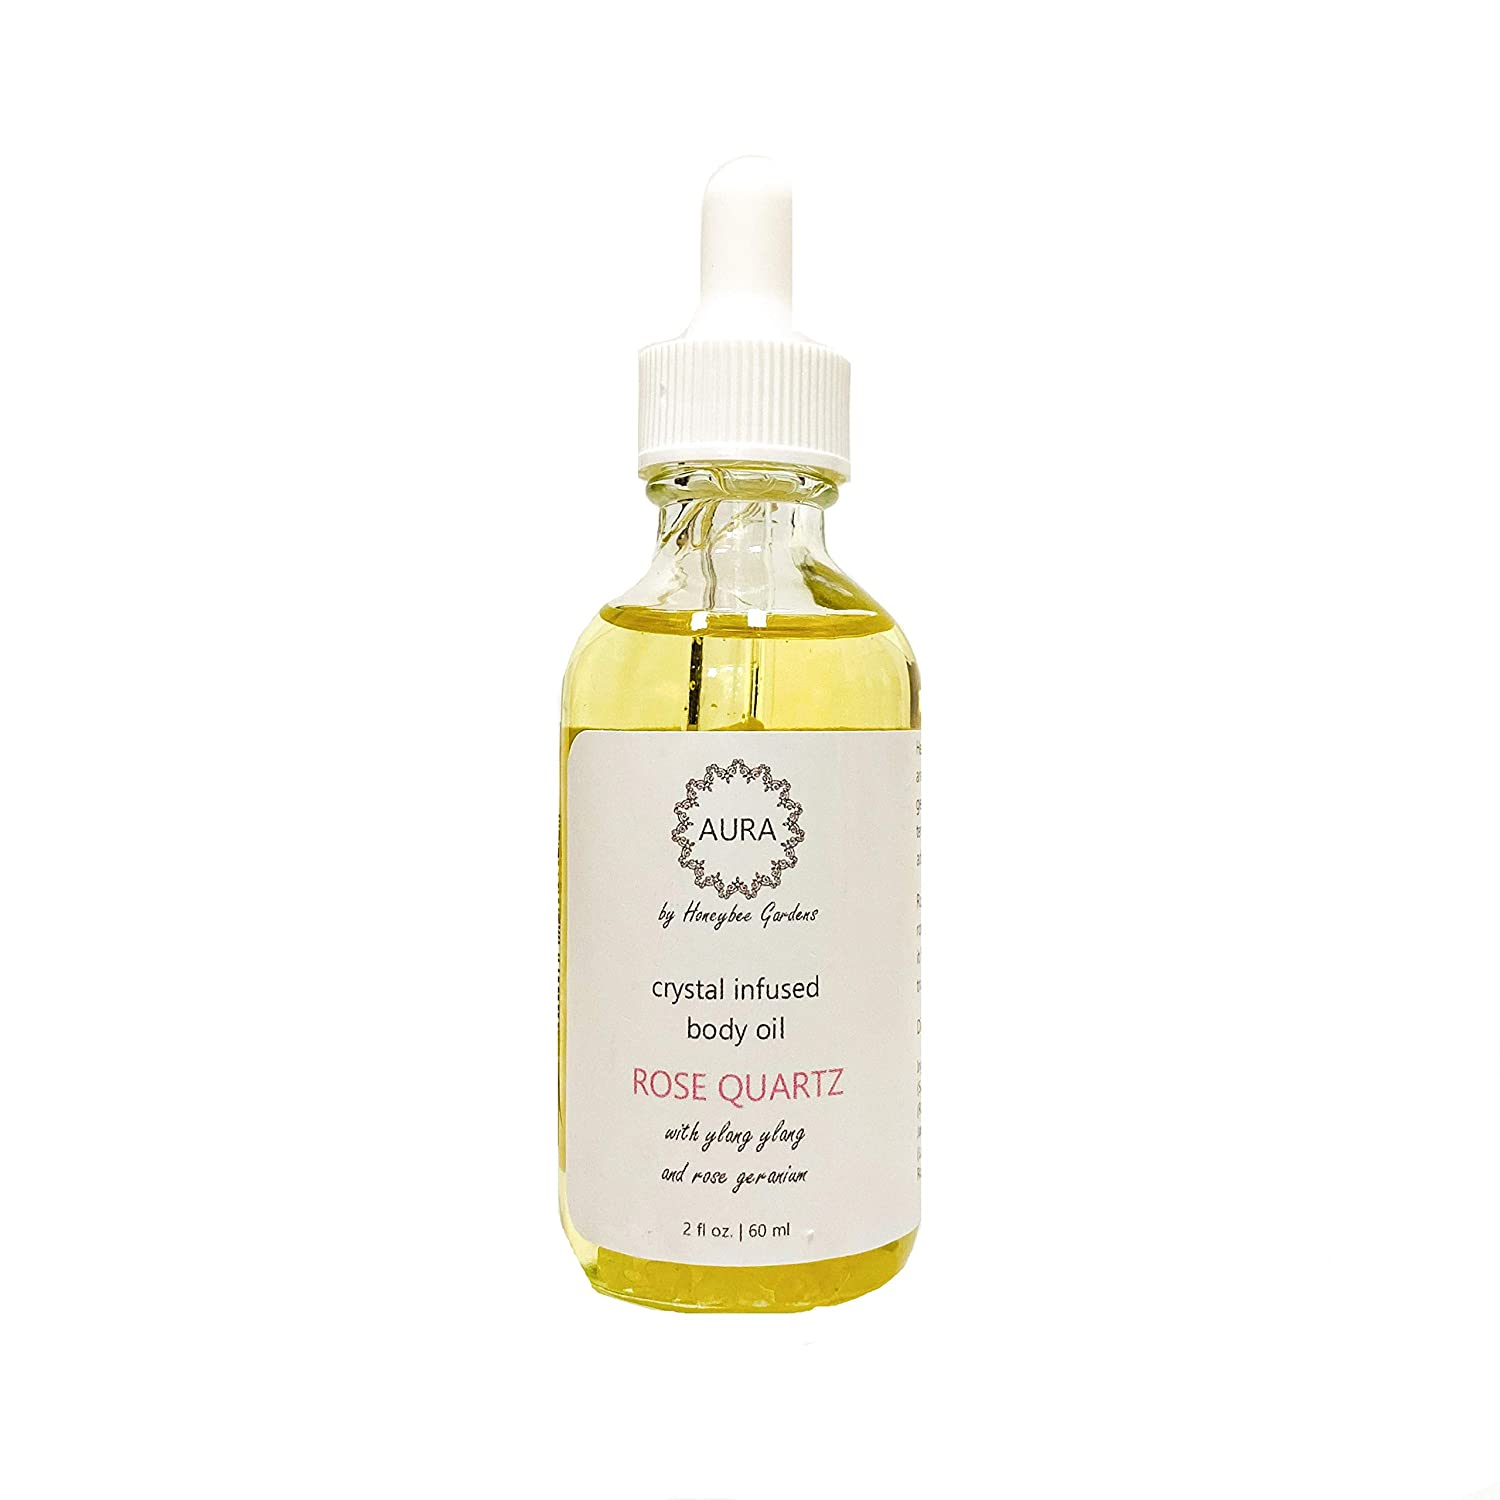 Honeybee Gardens Crystal Infused Body Oil - Rose Quartz, 2 oz.